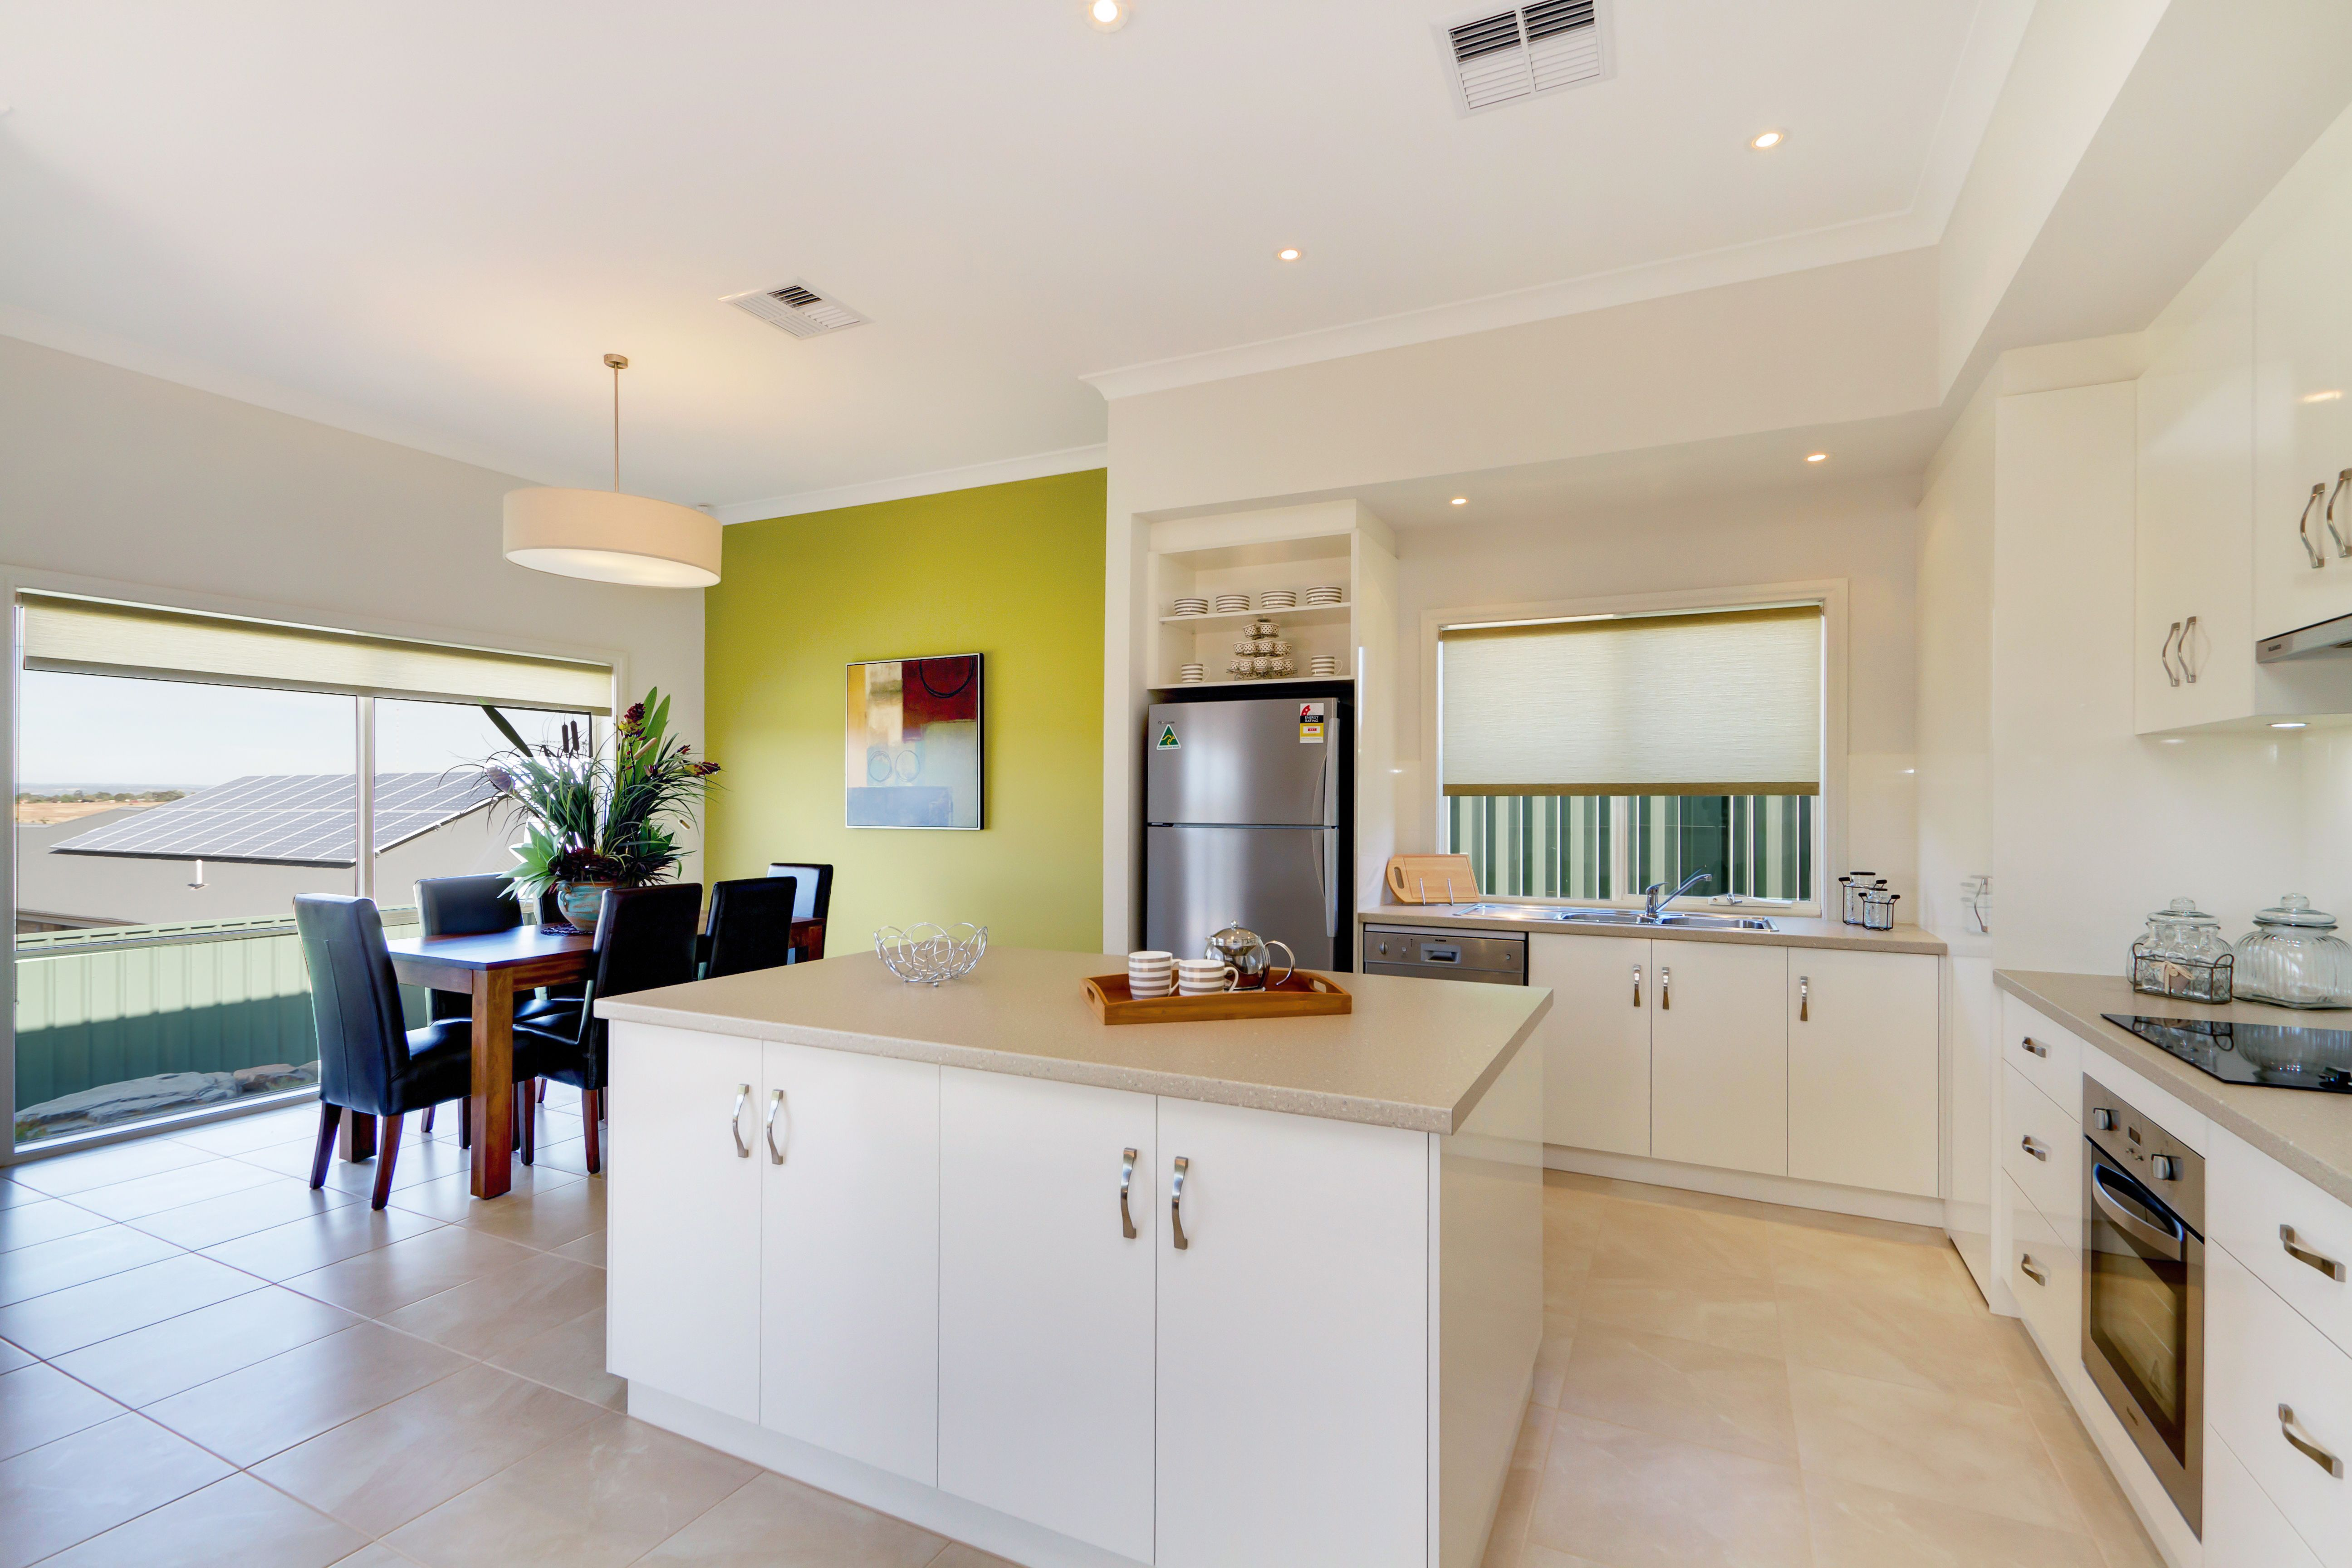 Excellent natural light in the kitchen and dining areas.